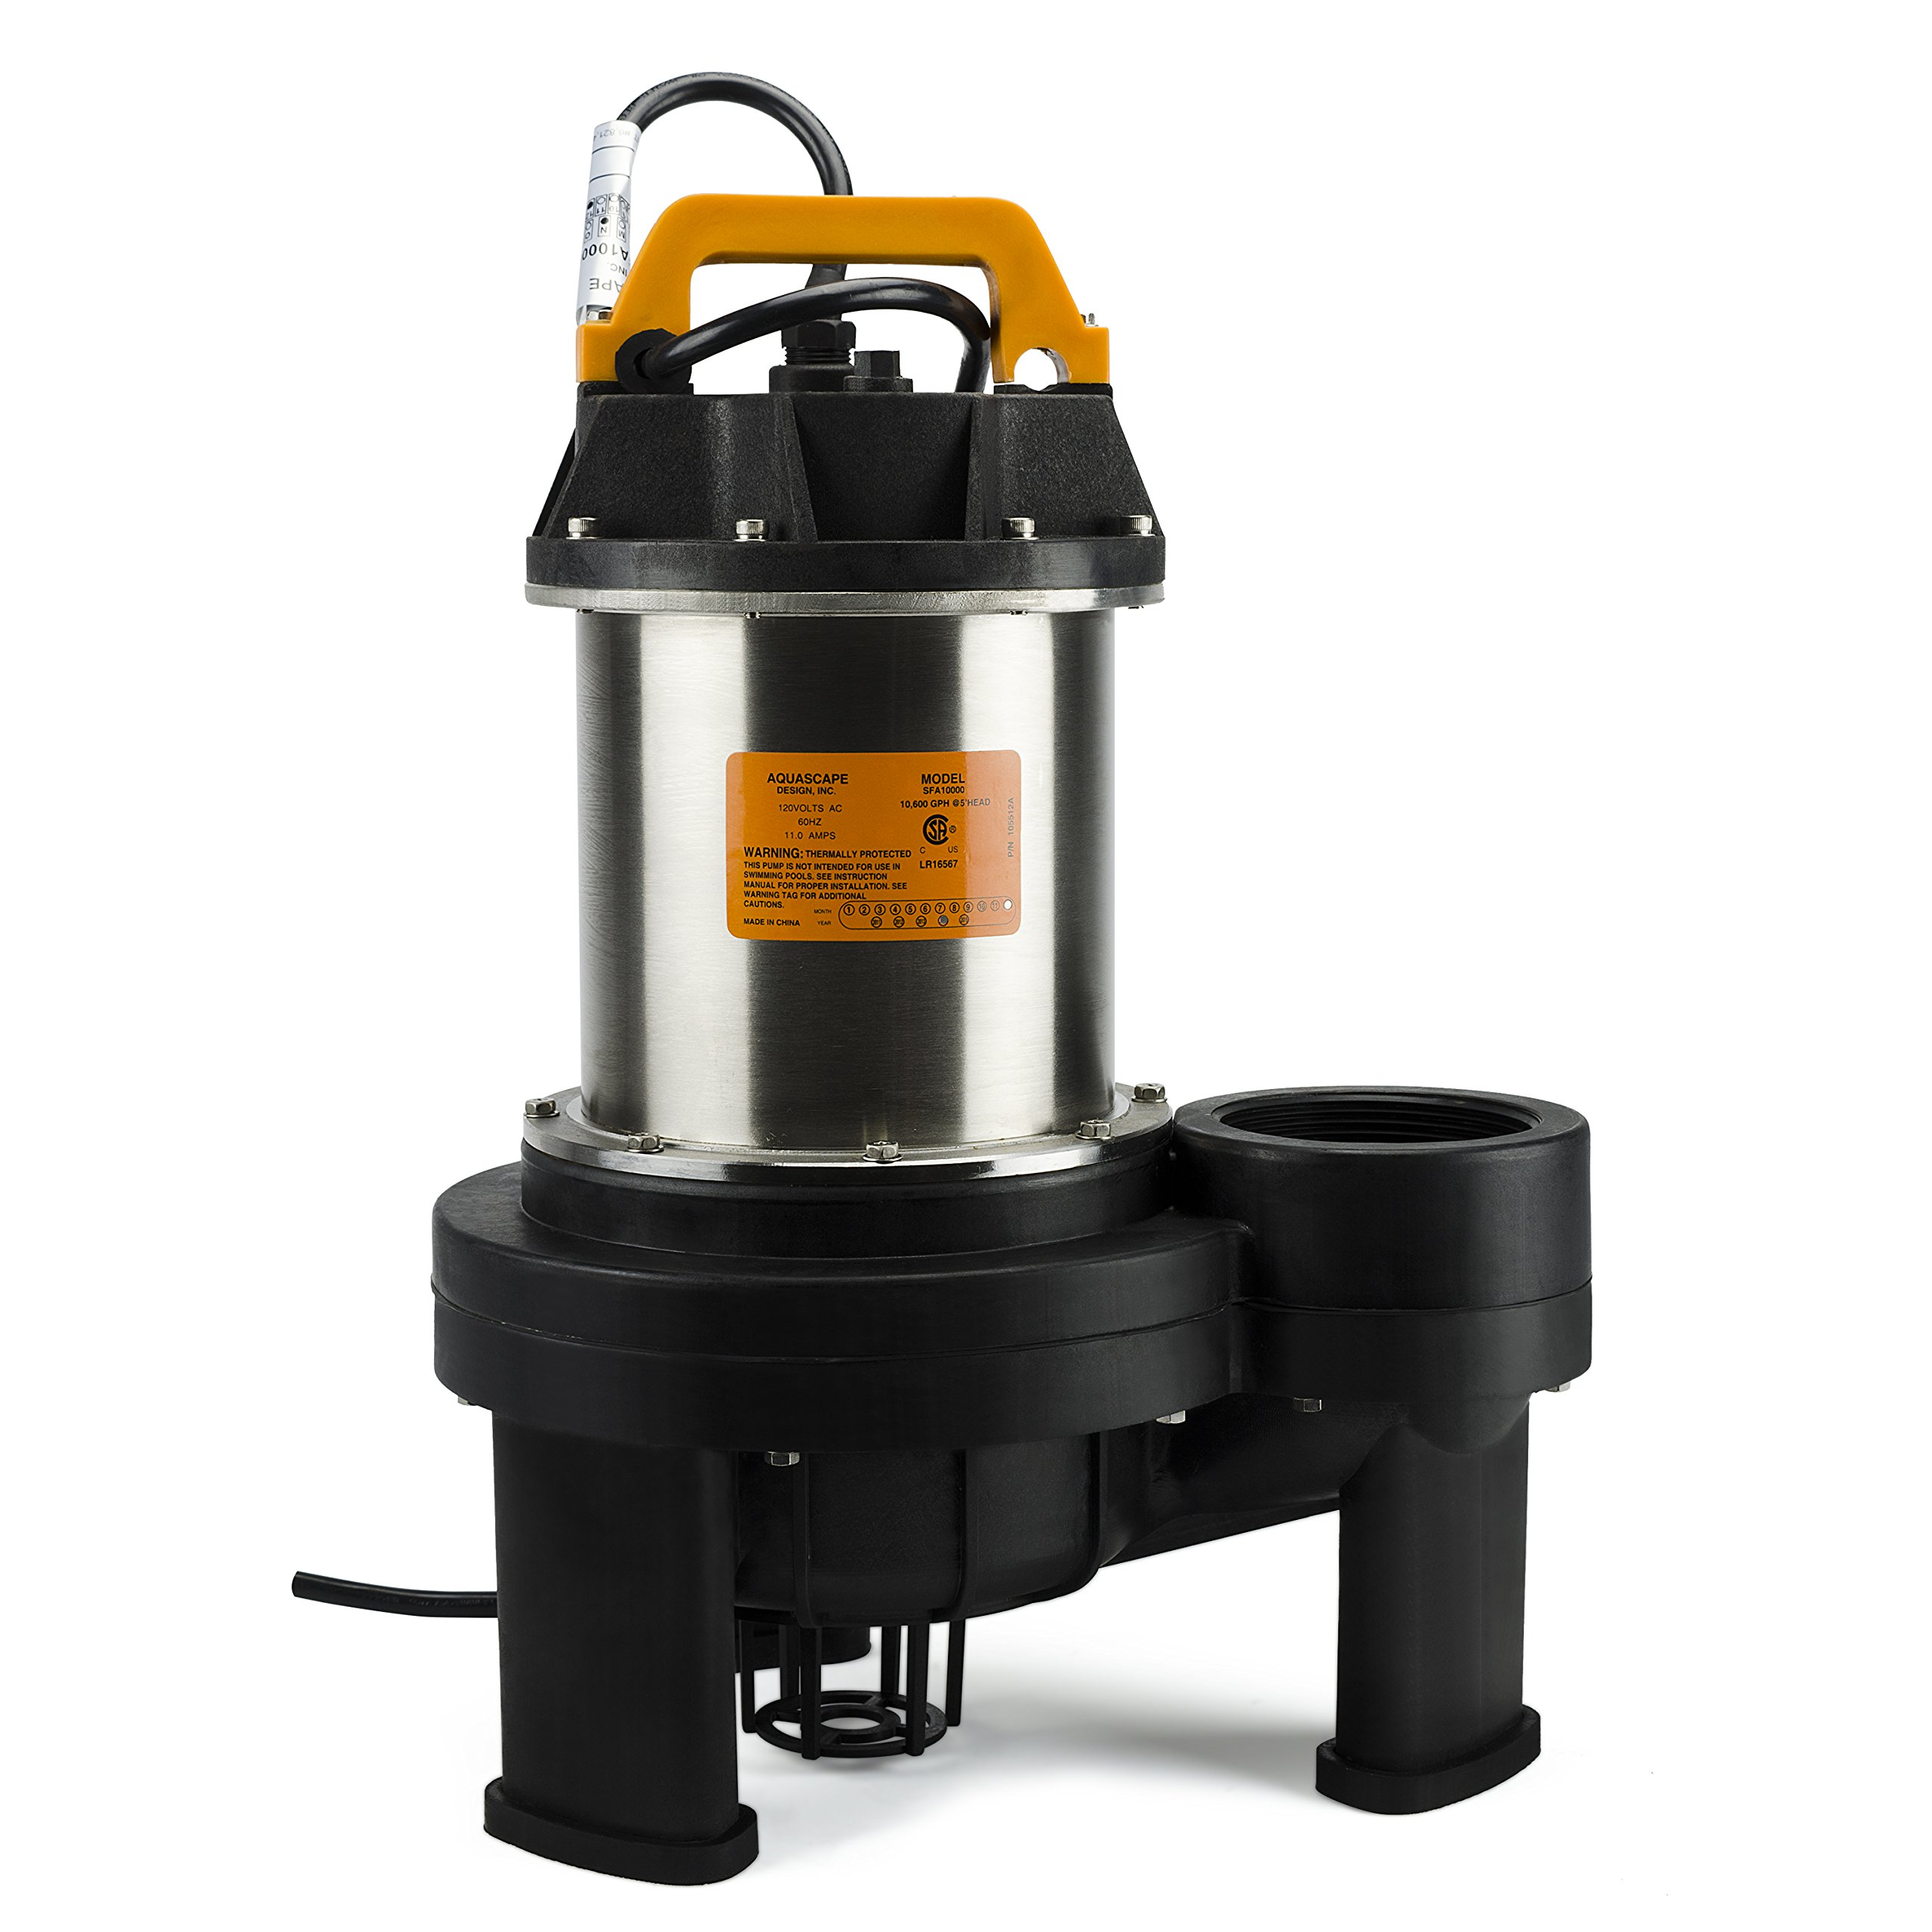 Aquascape 20006 AquascapePRO 10000 Submersible Pump for Ponds, Skimmer Filters, and Pondless Waterfalls, 10,600 GPH by Aquascape